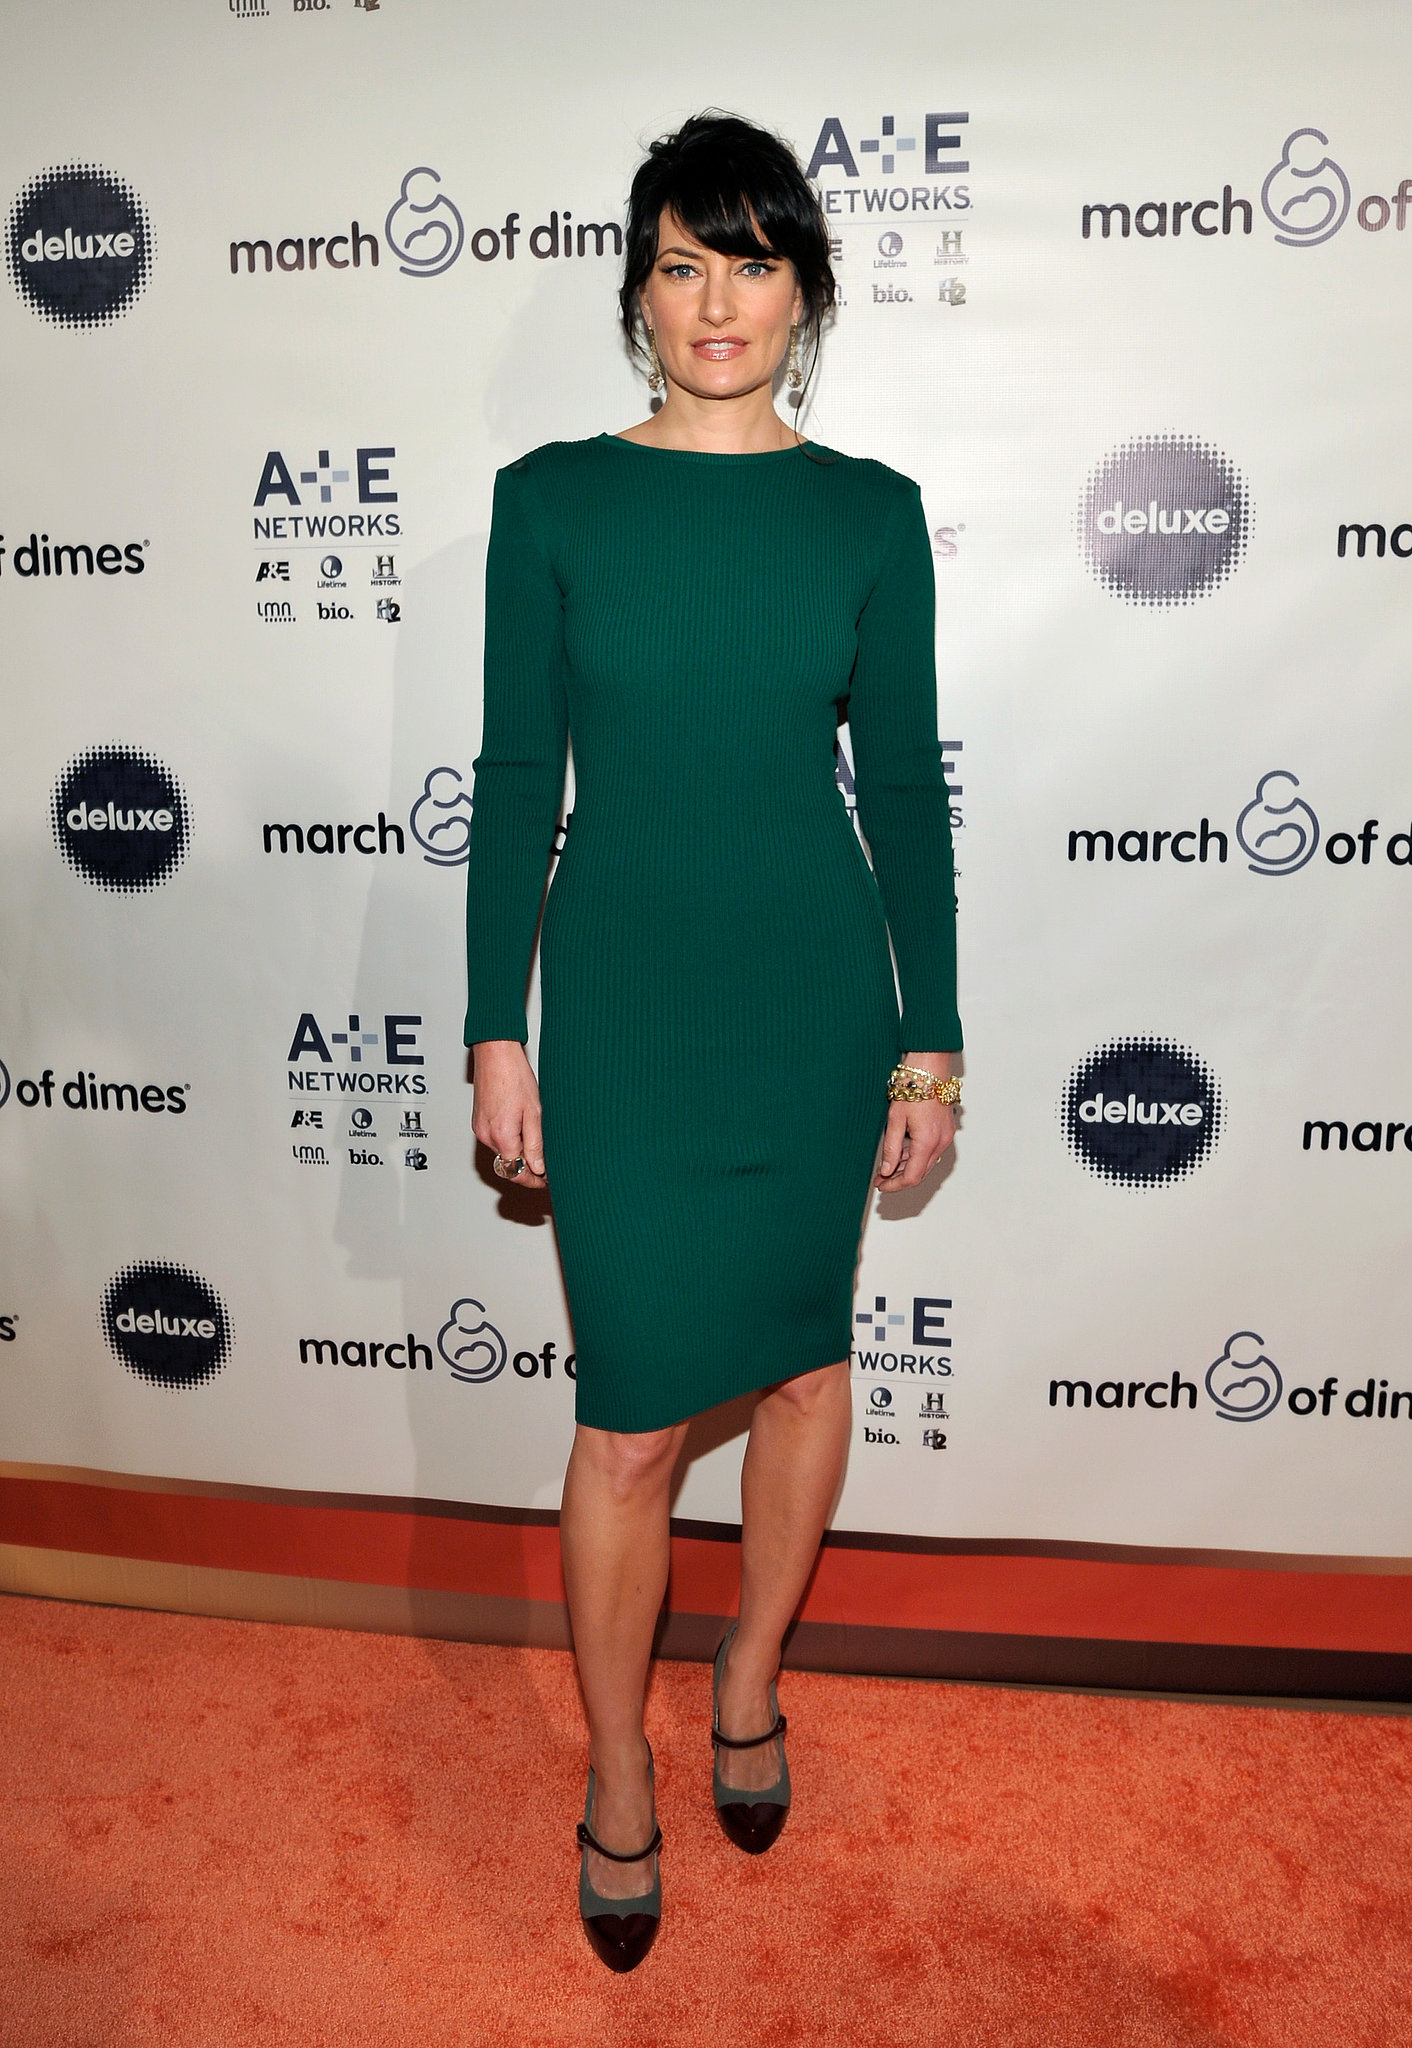 Madchen Amick stepped out for the event.